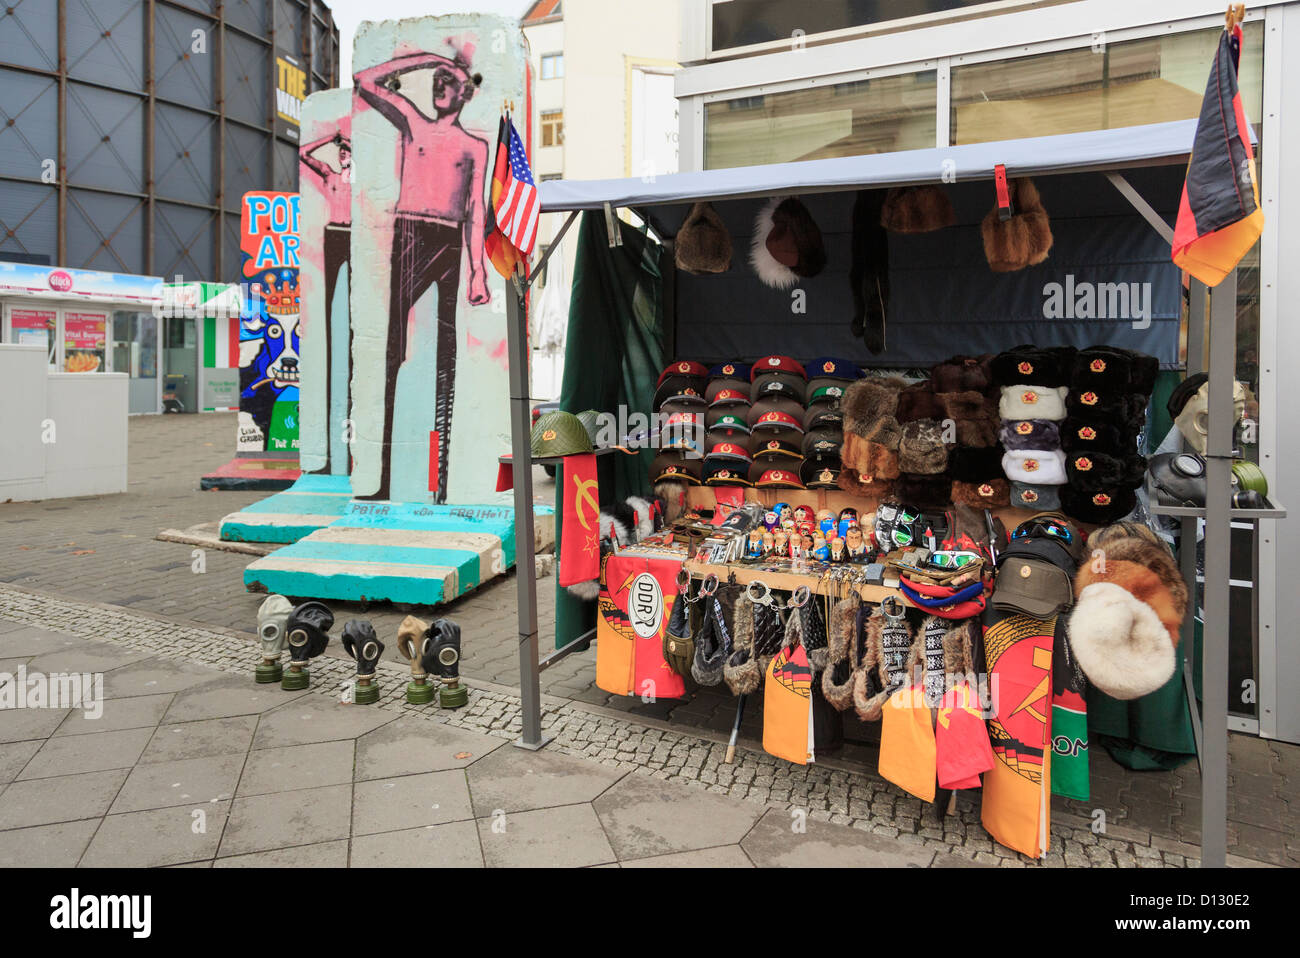 Stall selling DDR army and war memorabilia as souvenirs near sections of the original wall on Friedrichstrasse, - Stock Image